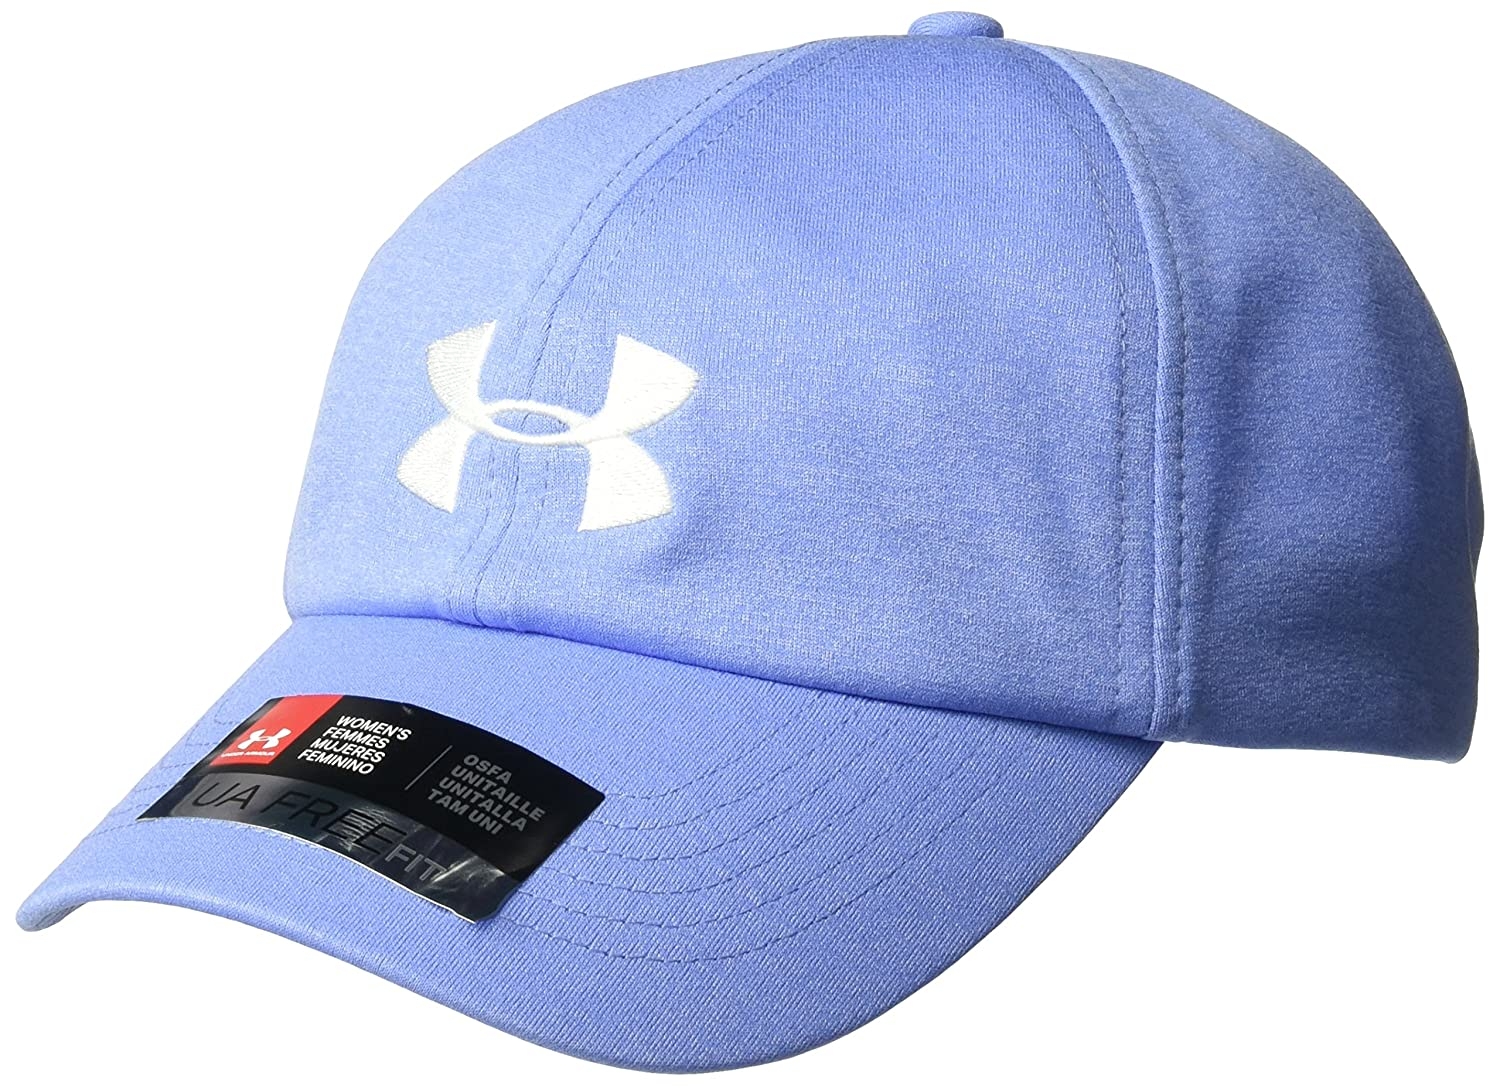 Under Armour Women's Renegade Cap Under Armour Accessories 1306289